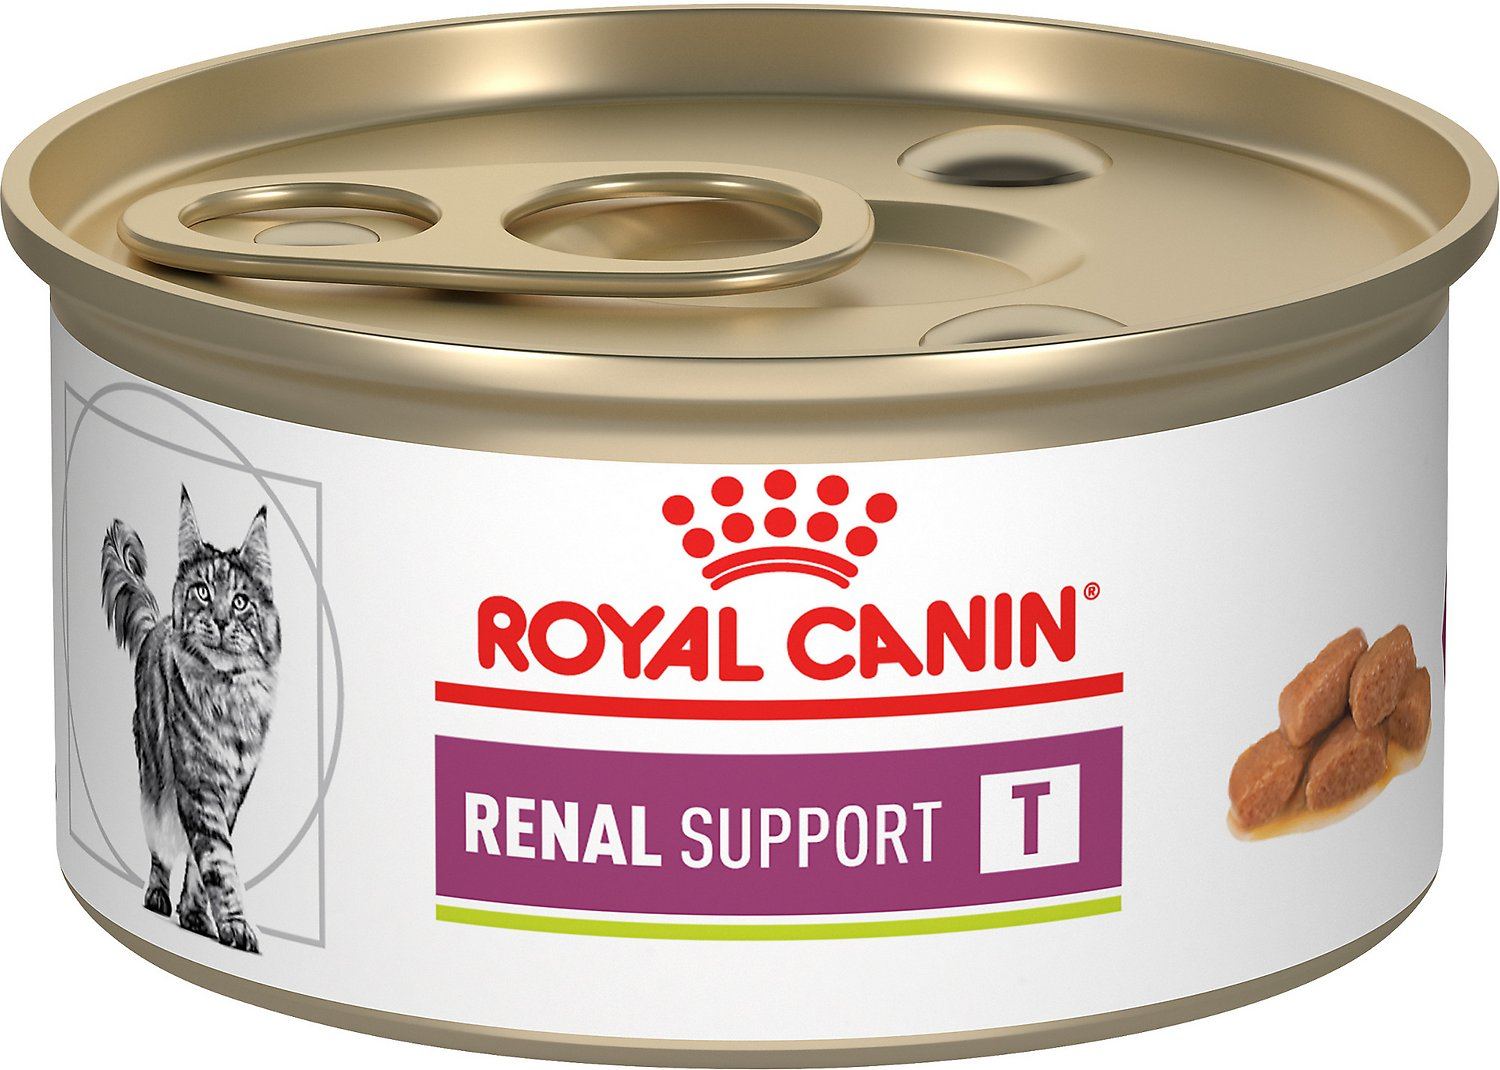 royal canin veterinary diet renal support t canned cat. Black Bedroom Furniture Sets. Home Design Ideas